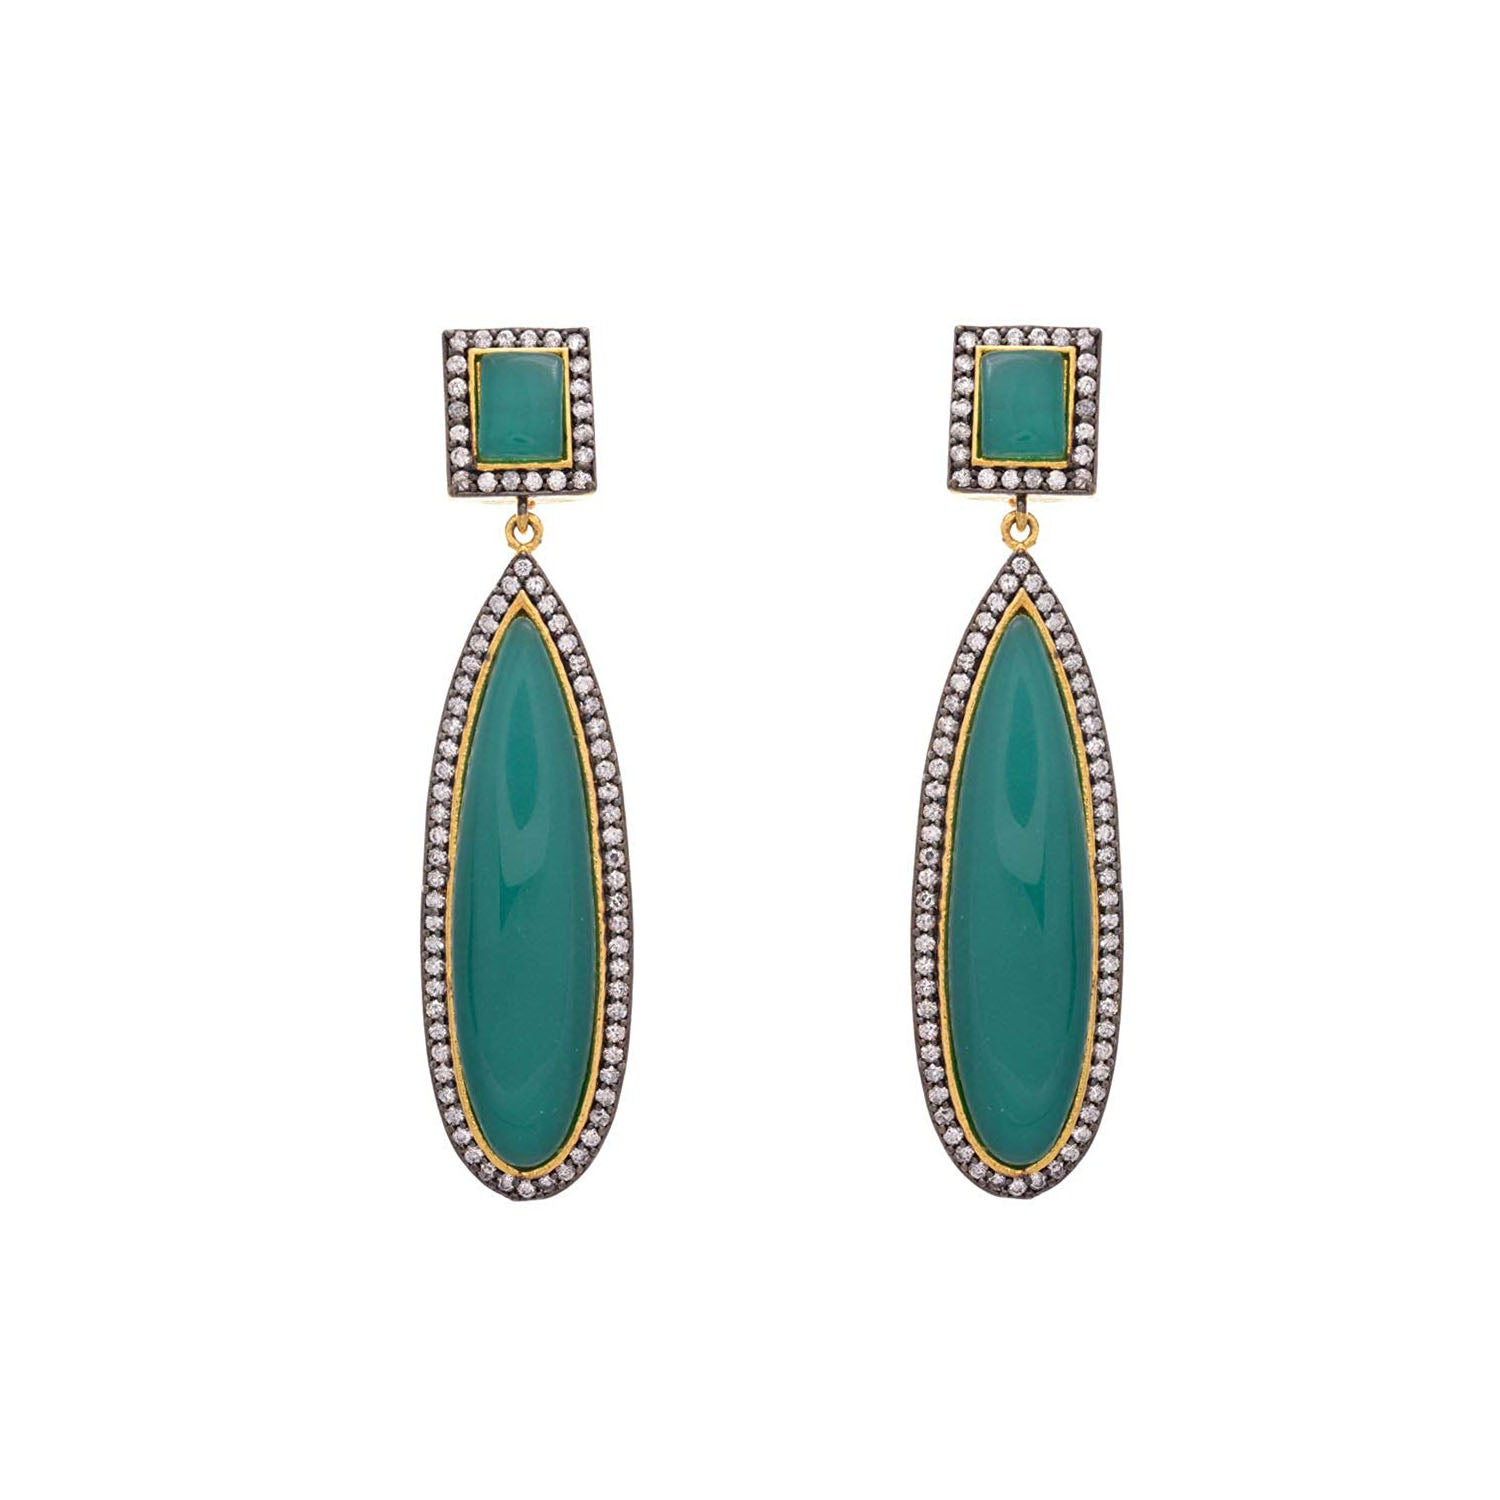 Fusion Ethnic One Gram Gold Plated Cz American Diamond Green Designer Earring for Women & Girls